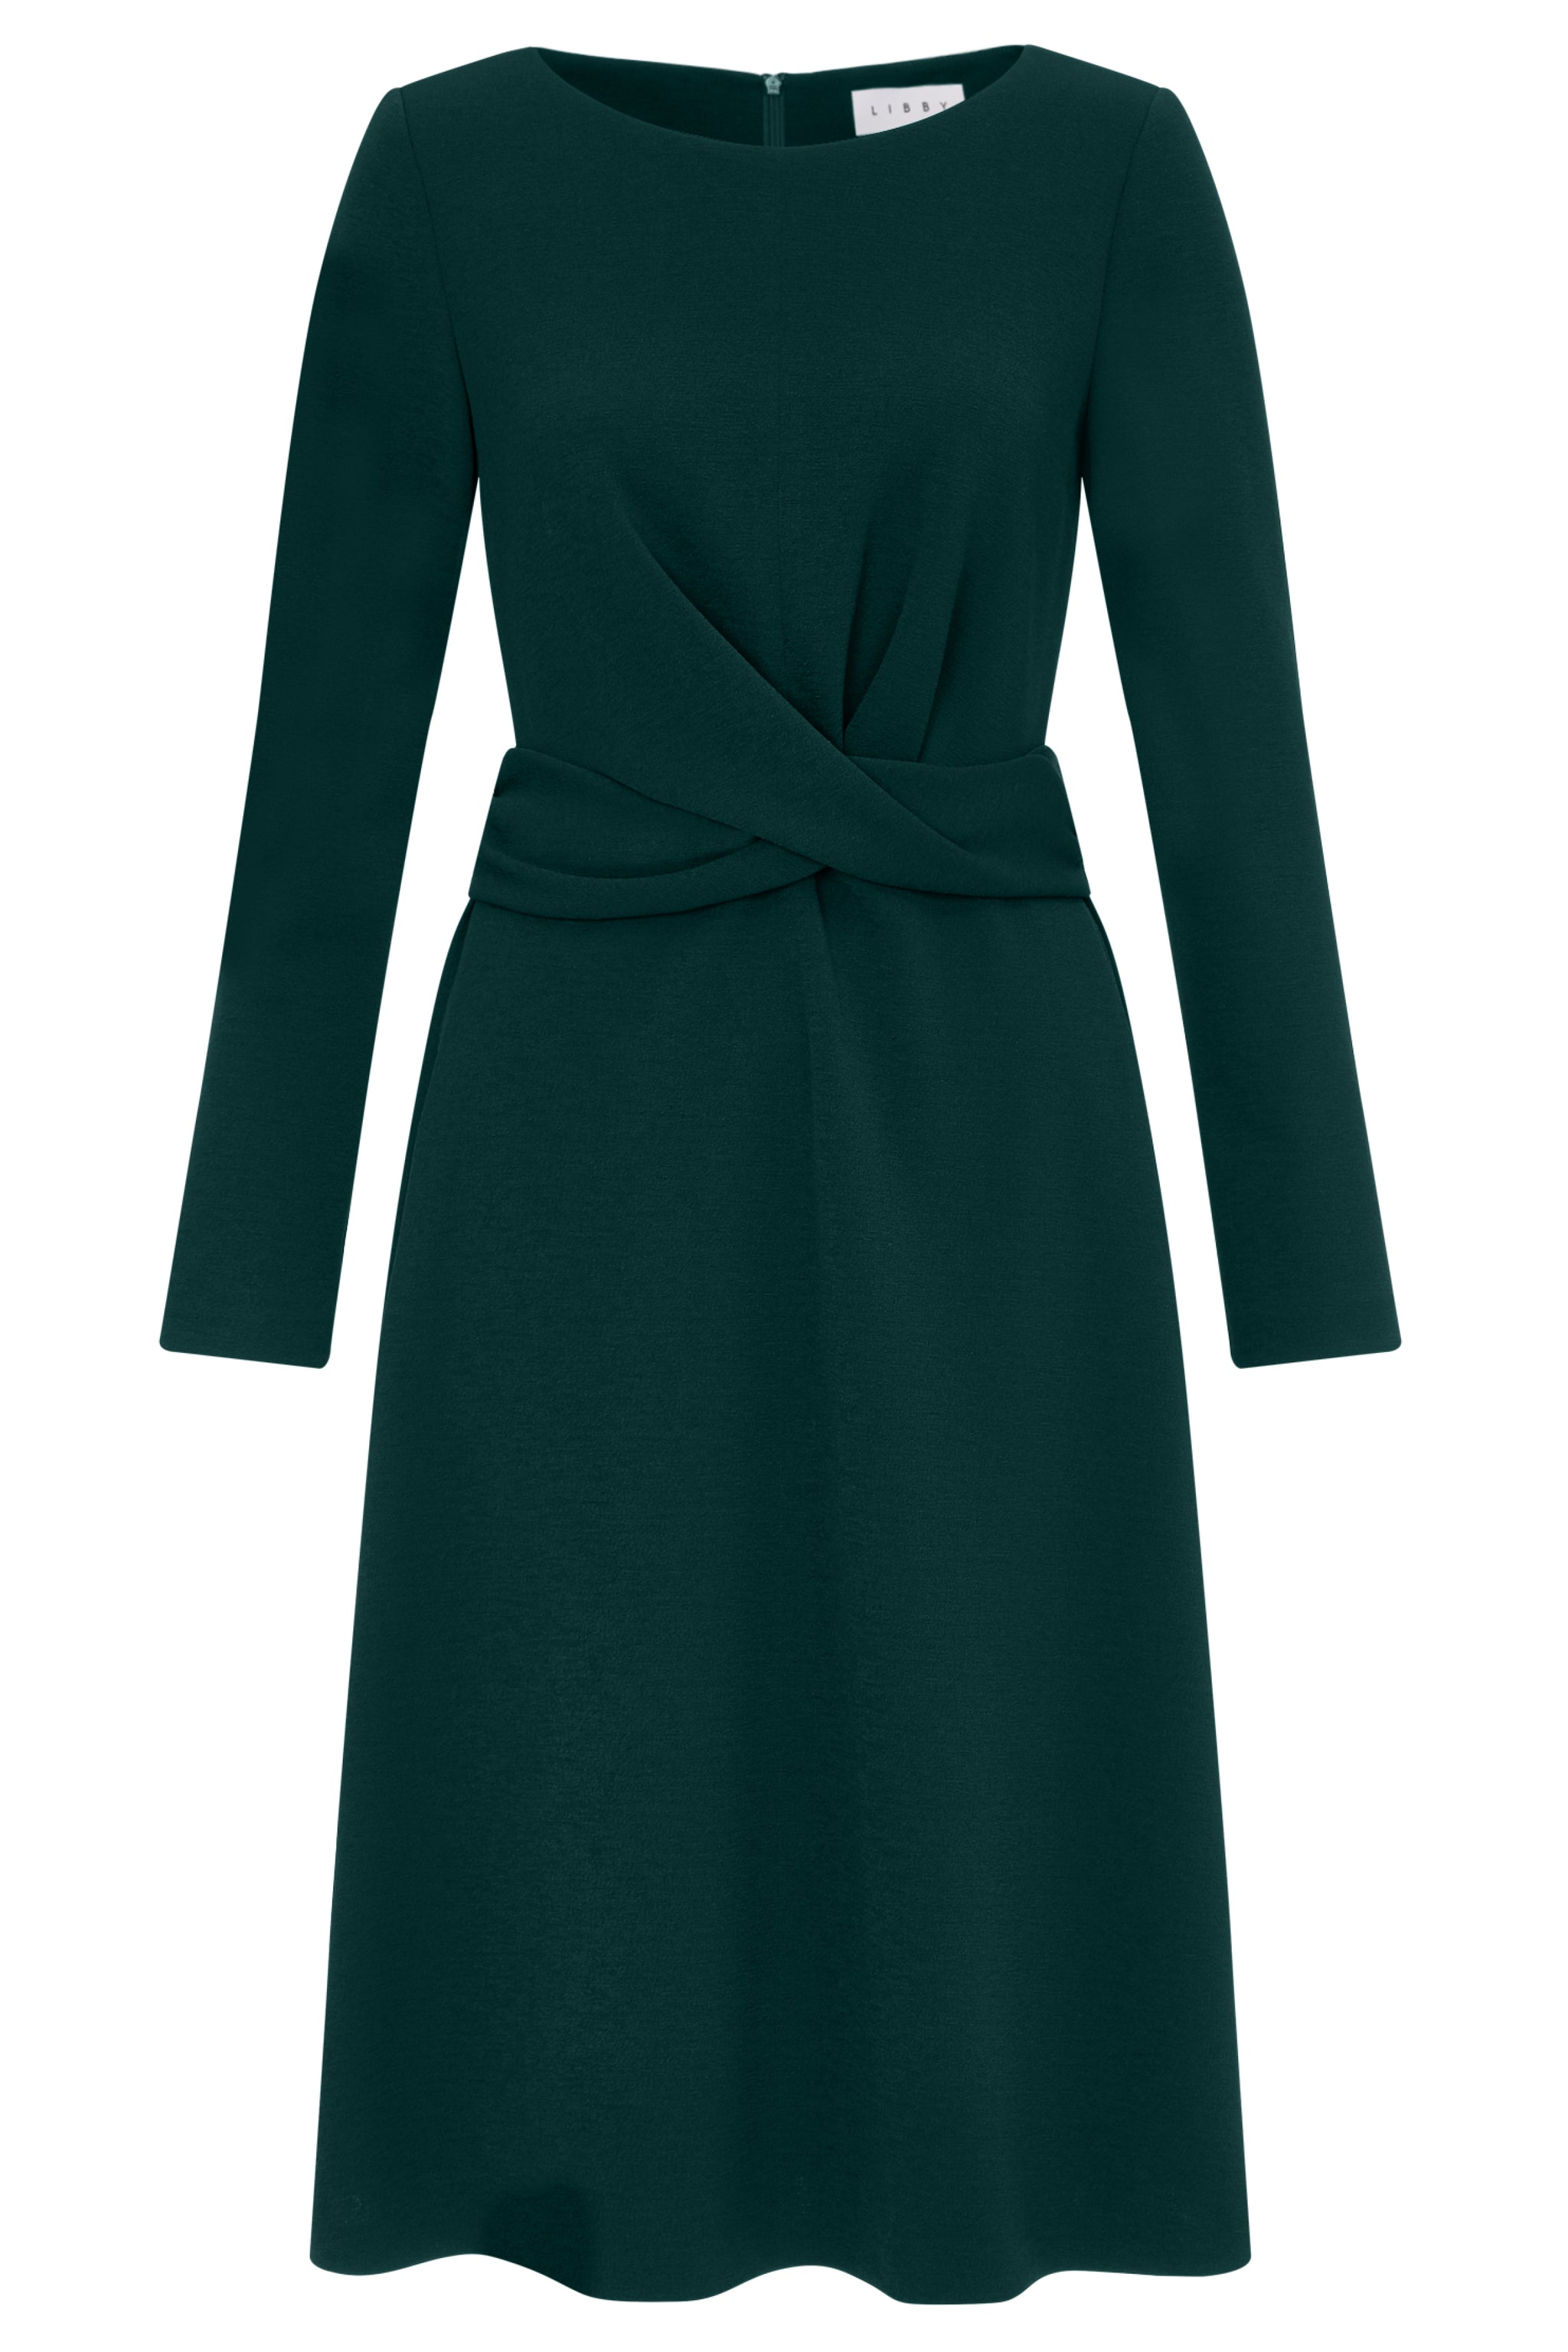 Charlton Green Dress